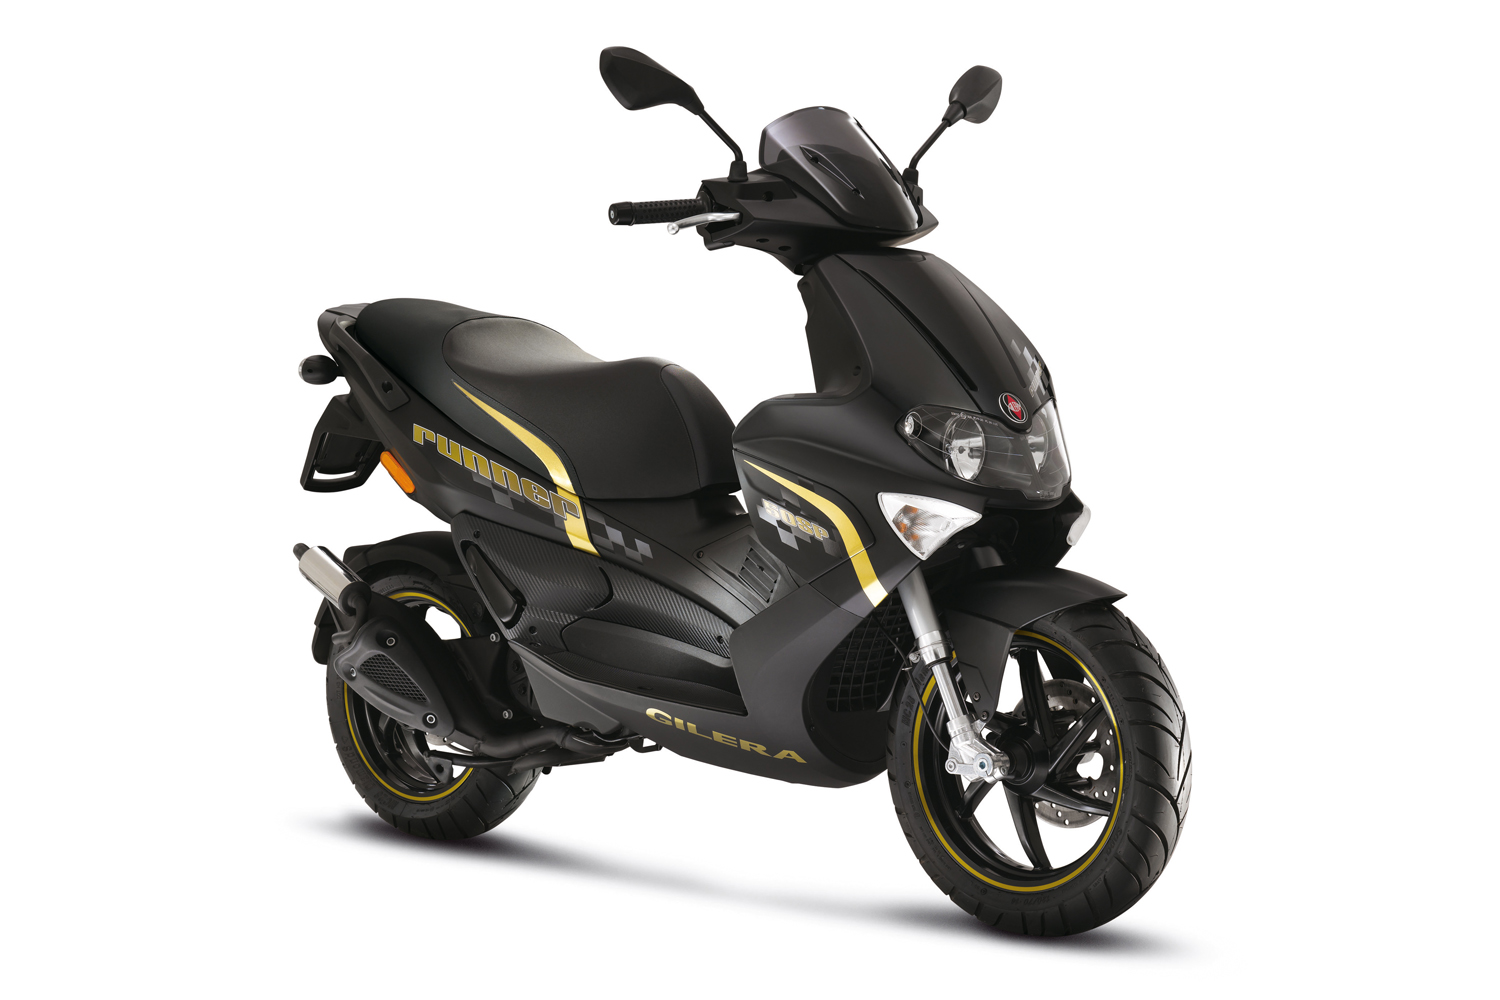 Gilera Runner 125 Black Soul 2015 images #74472